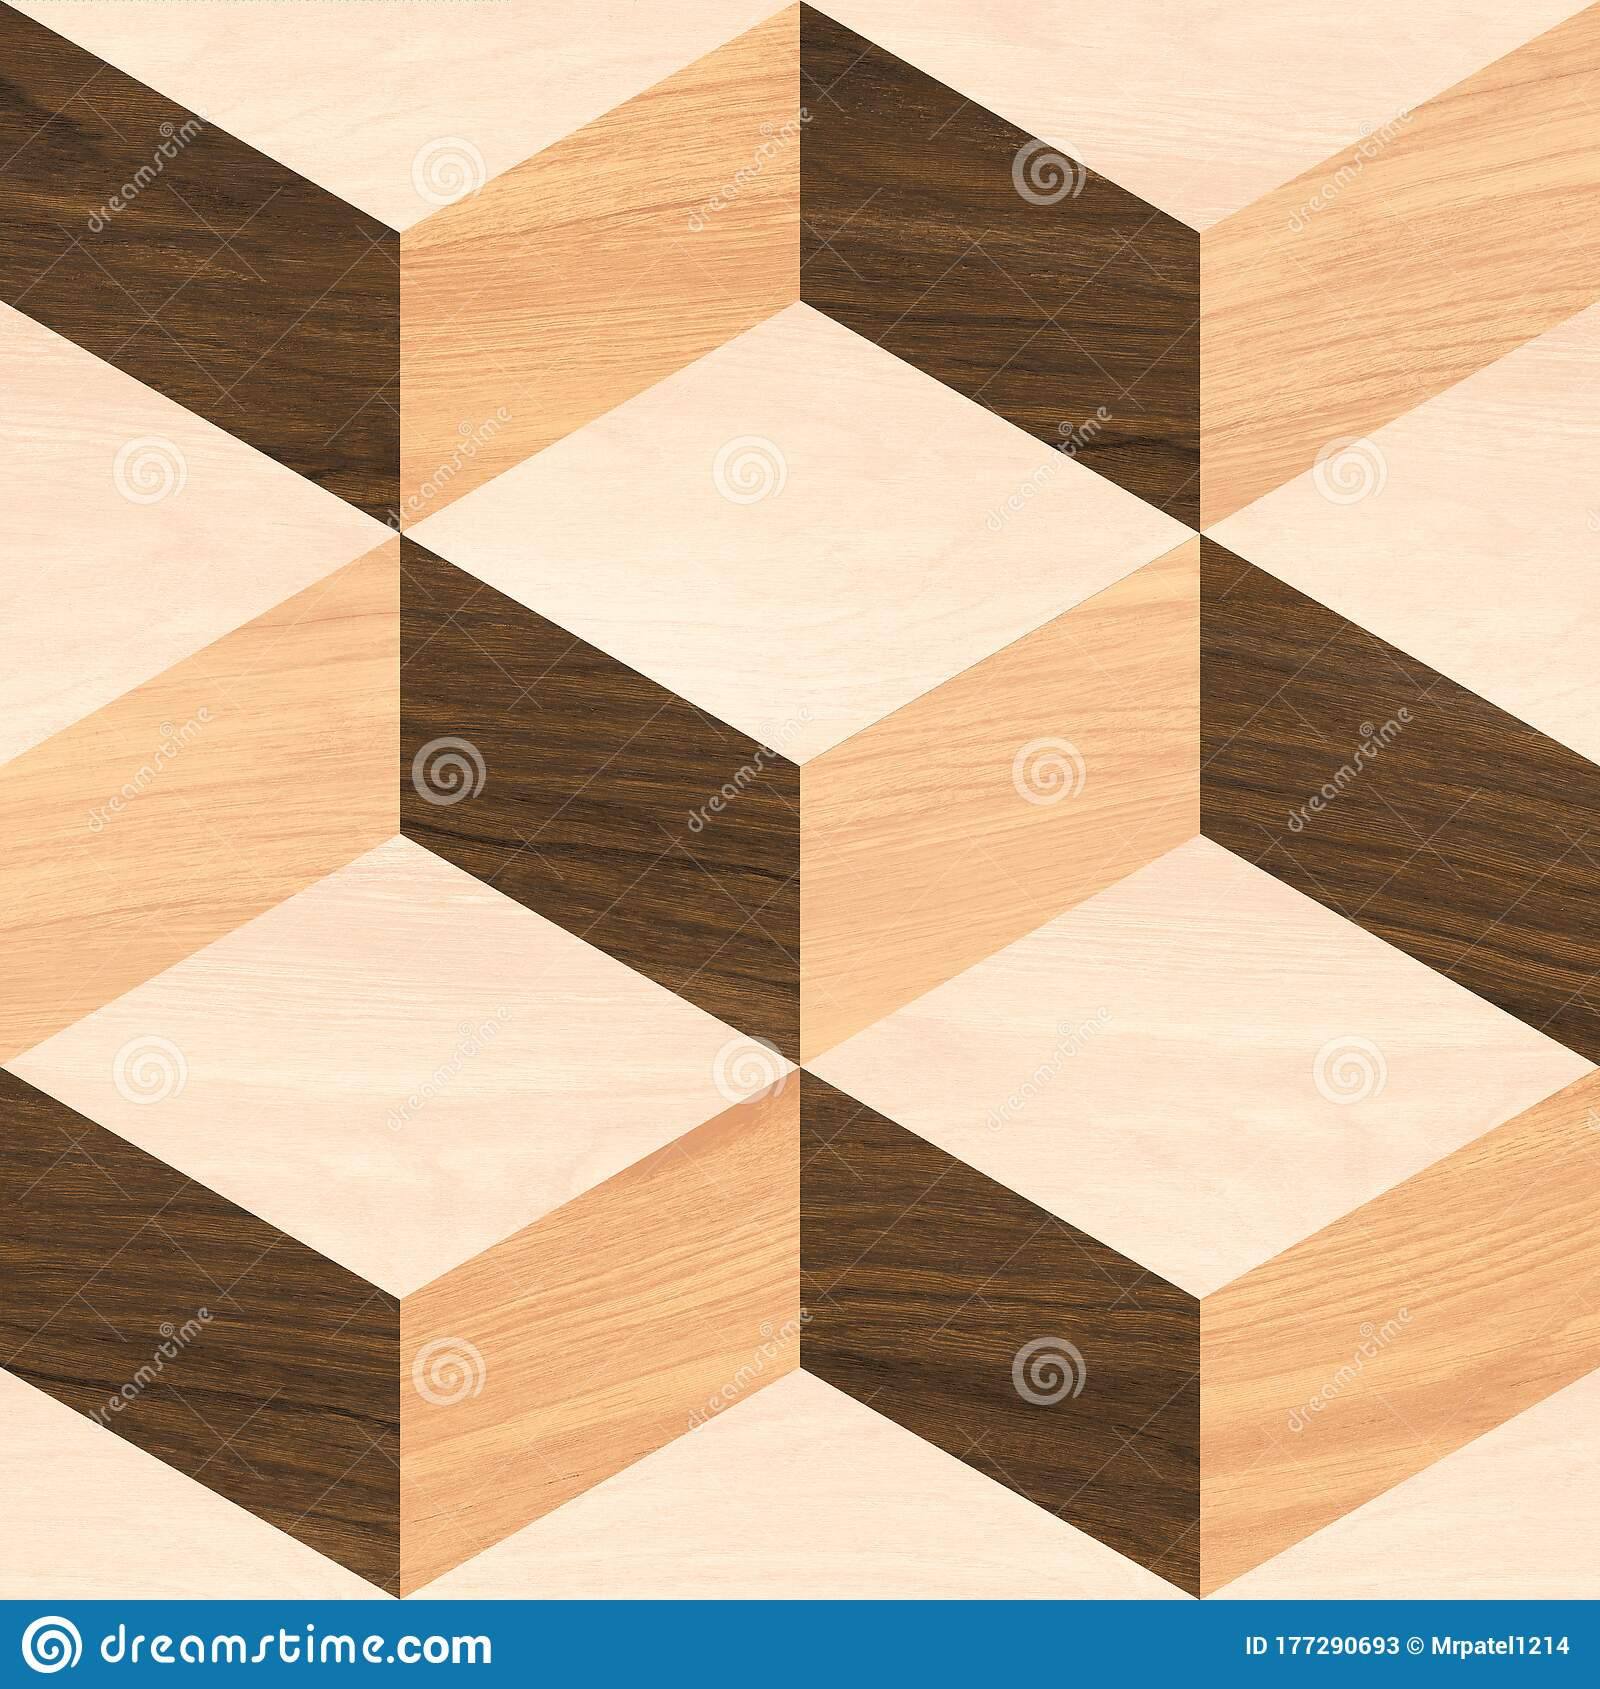 Geometric Pattern Floor And Wall Decor Wooden Tile Stock Image ...